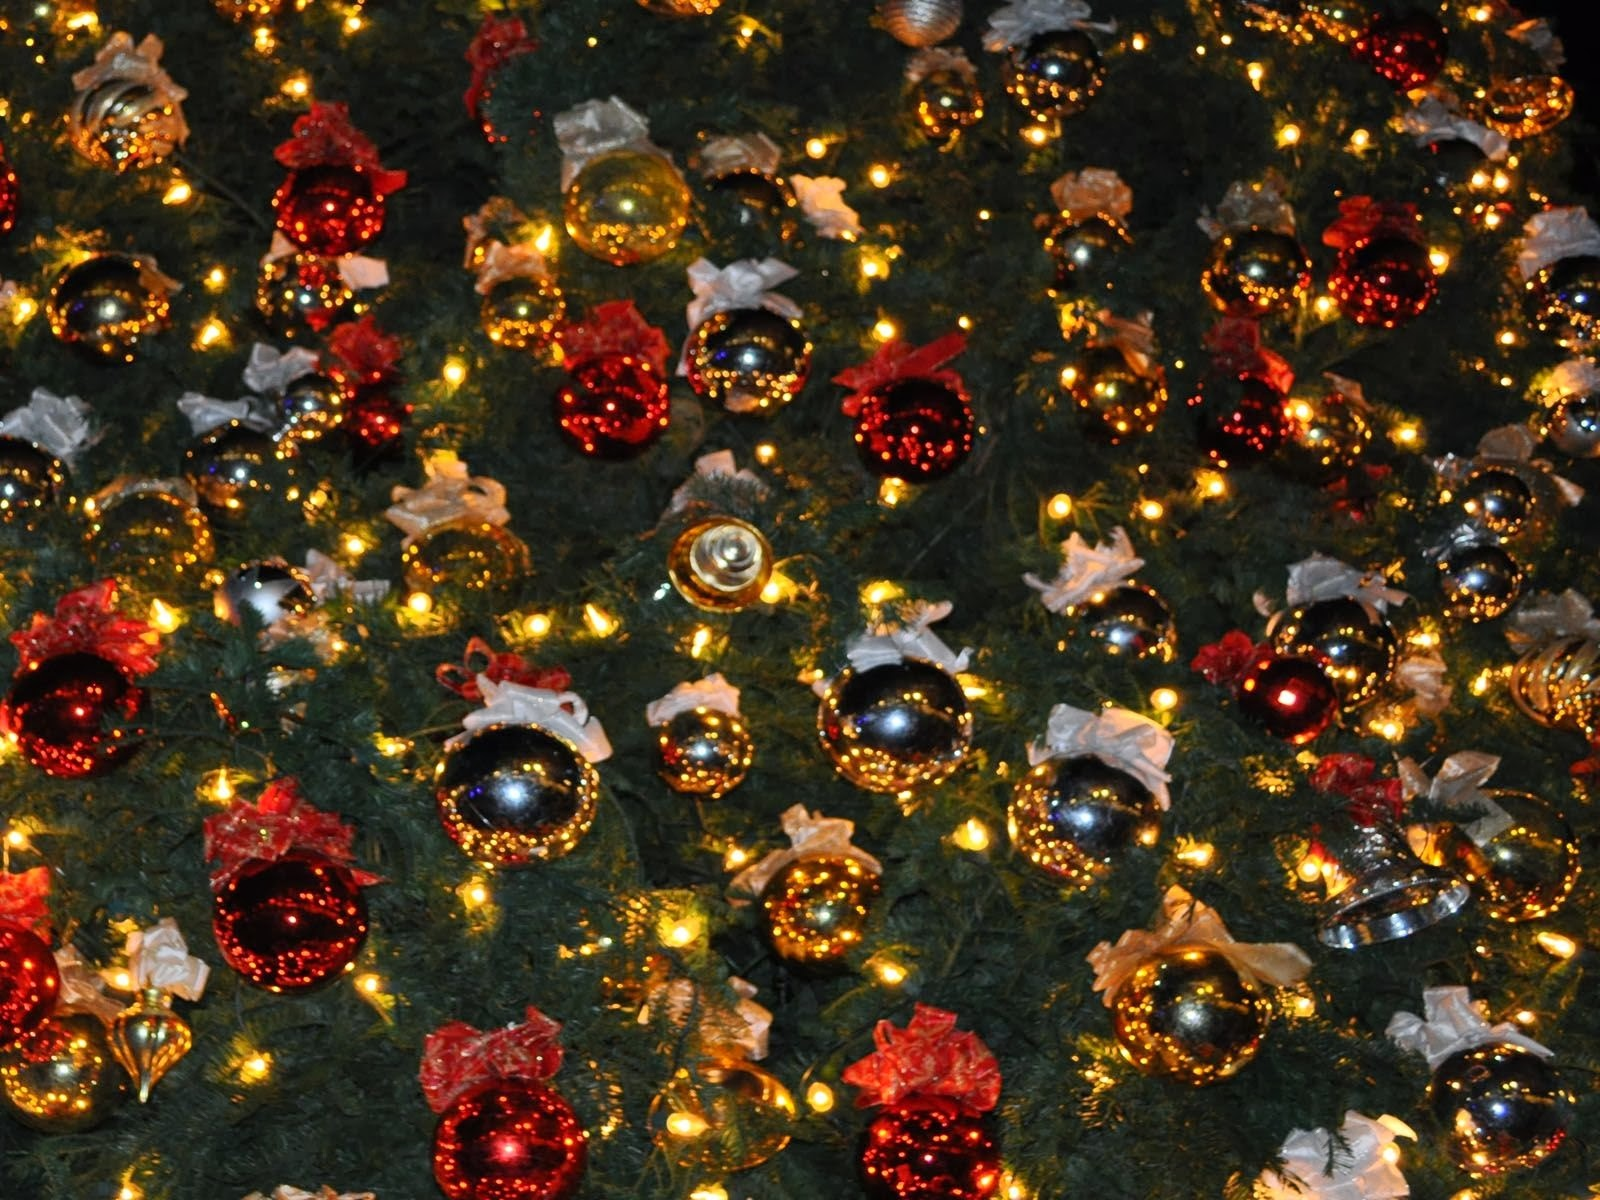 hd wallpapers samsung cell phone christmas lights wallpaper and 1600x1200